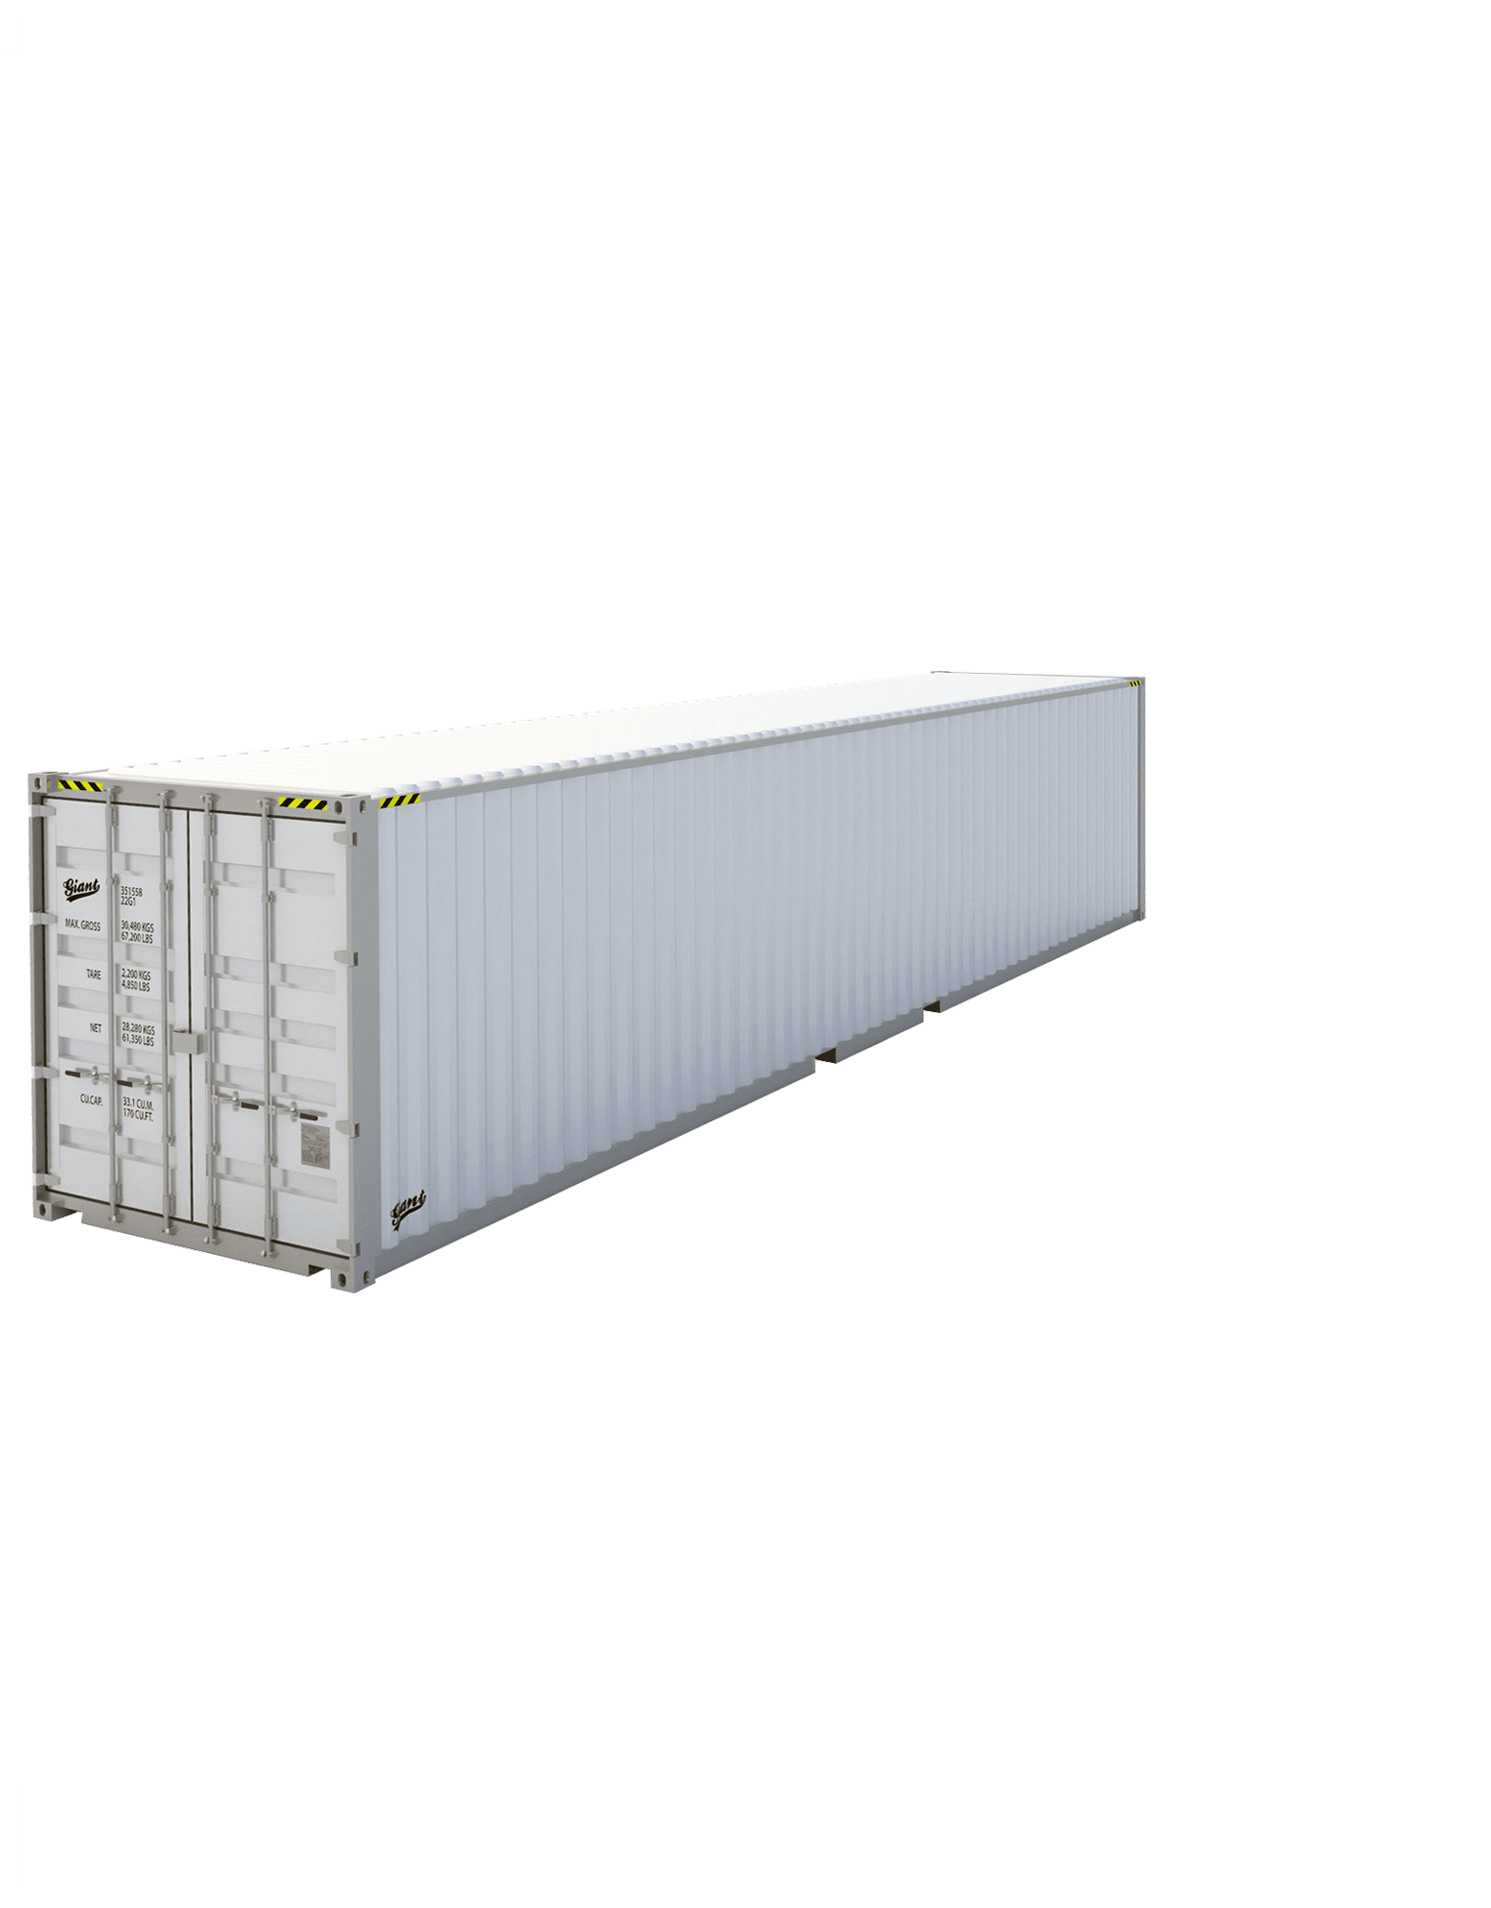 The Must-Read Guide to Shipping Container Maintenance